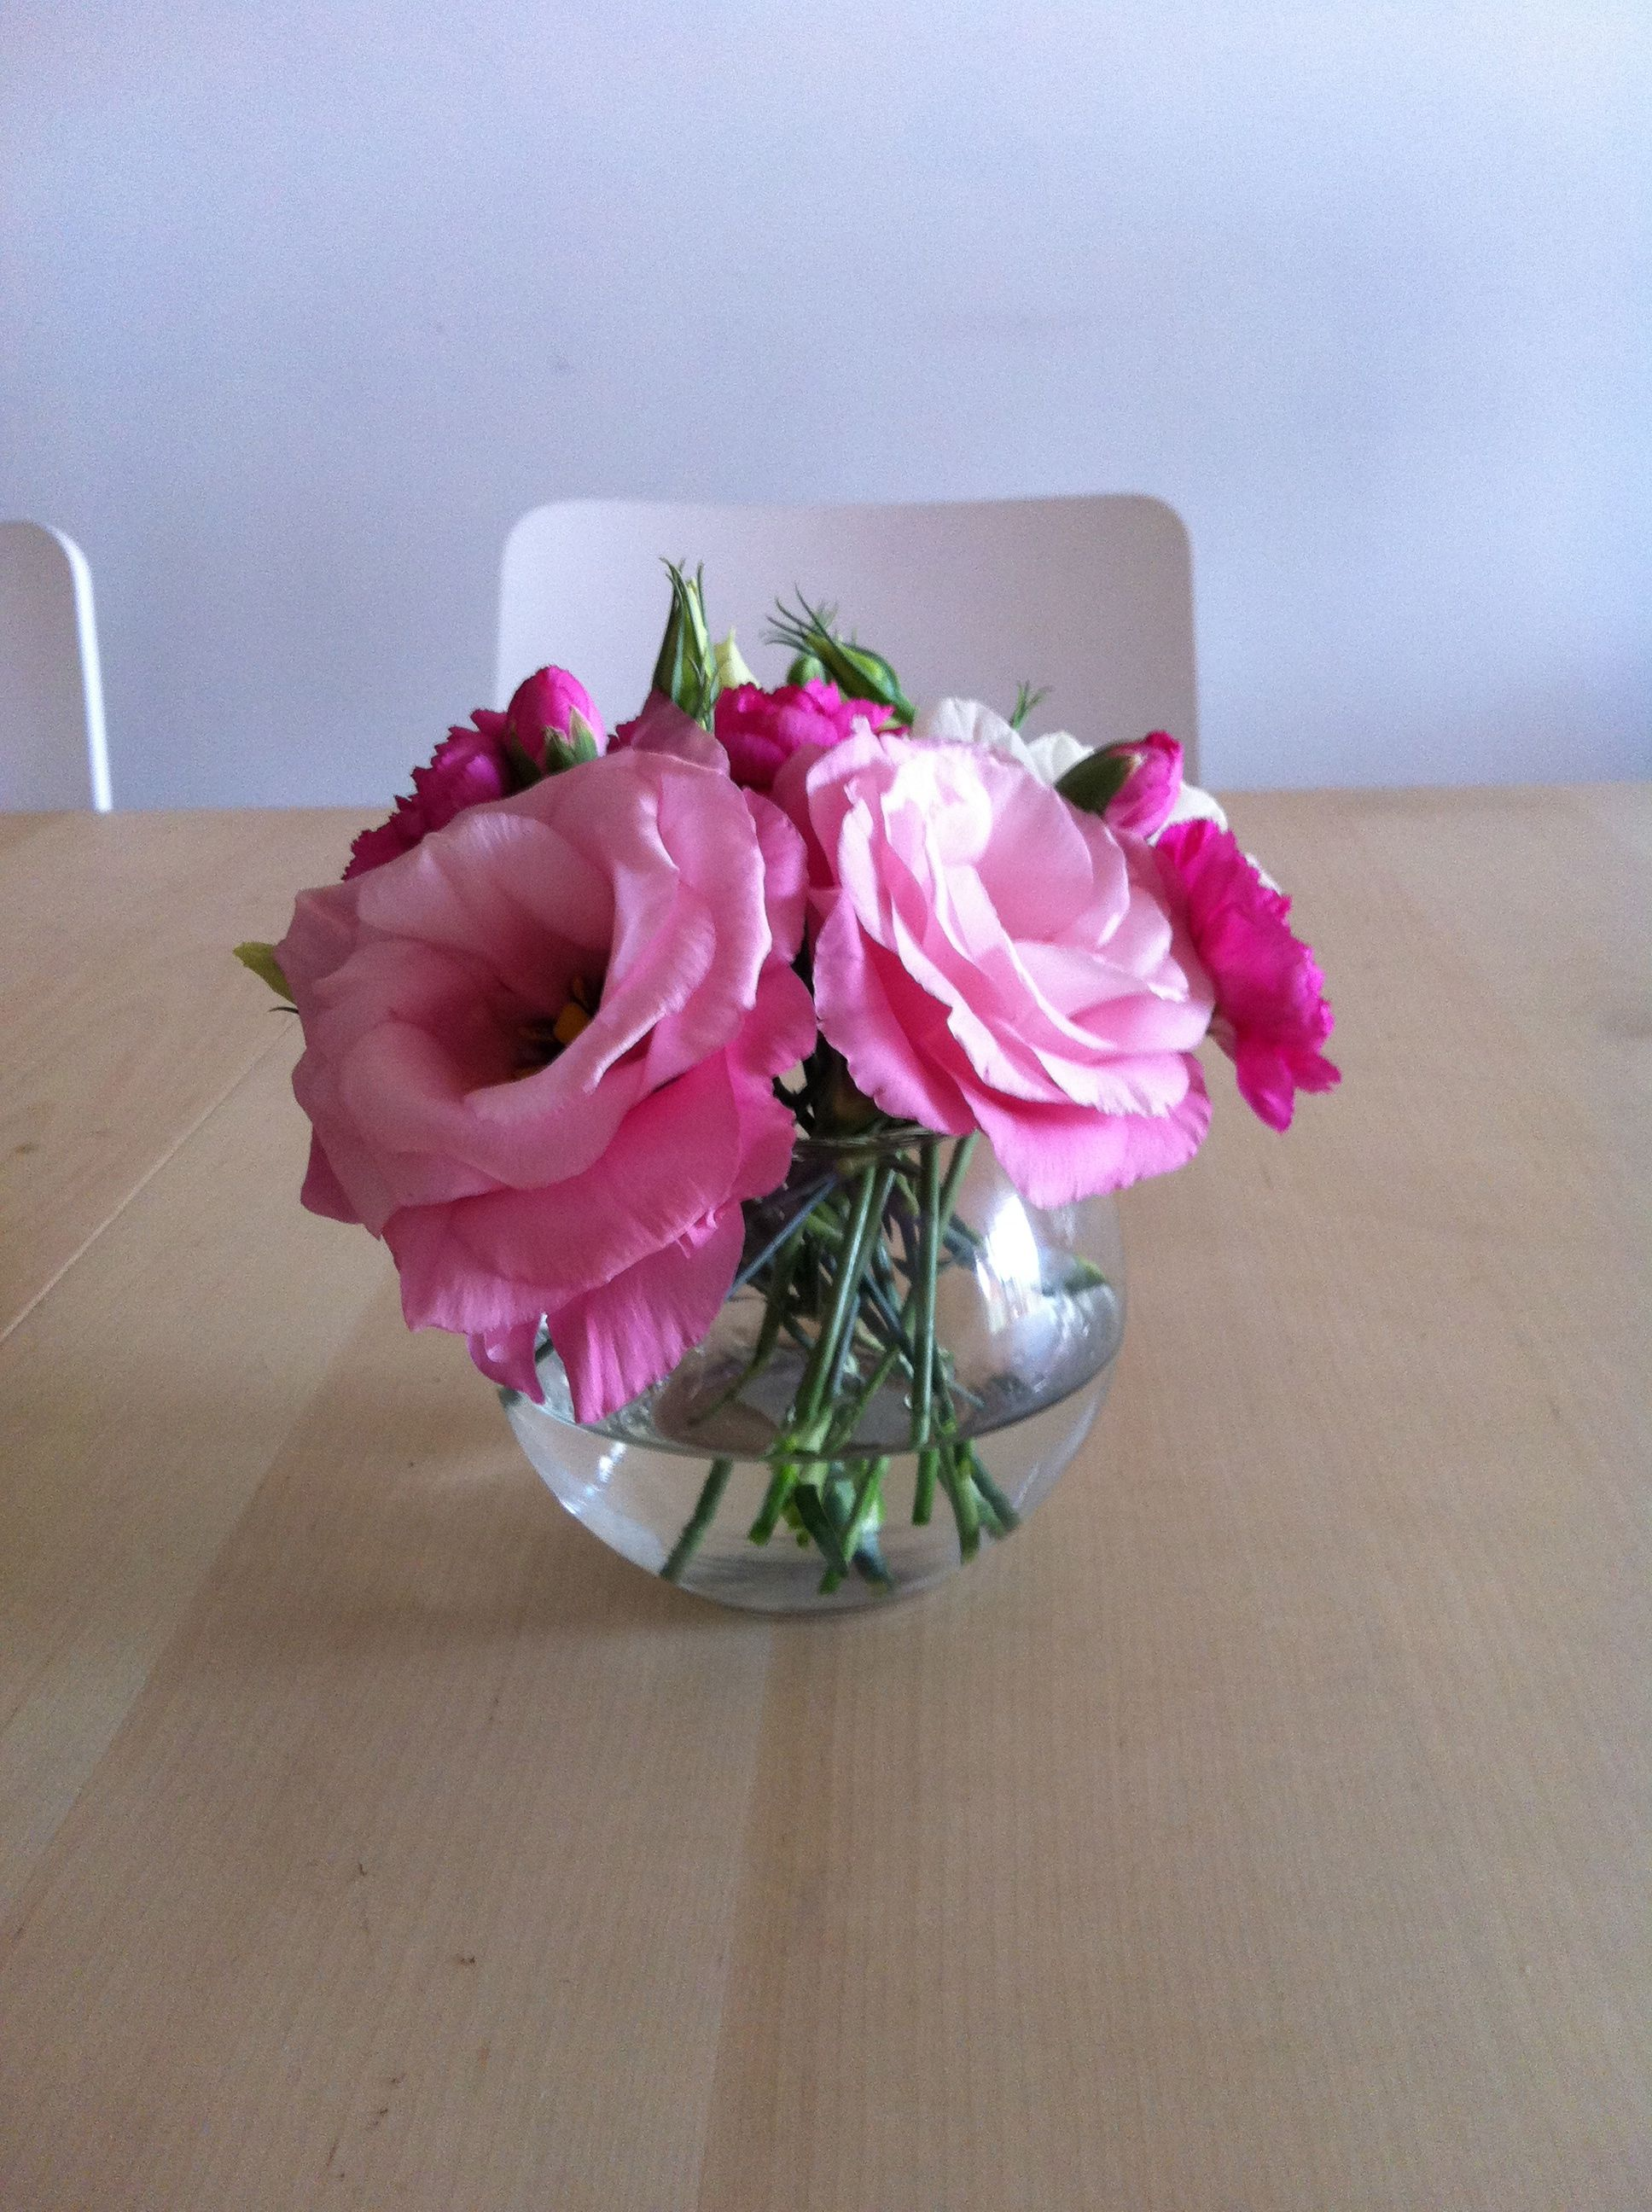 Flower Practice In Small Round Vase View 1 Wedding Table Settings Round Vase Floral Arrangements